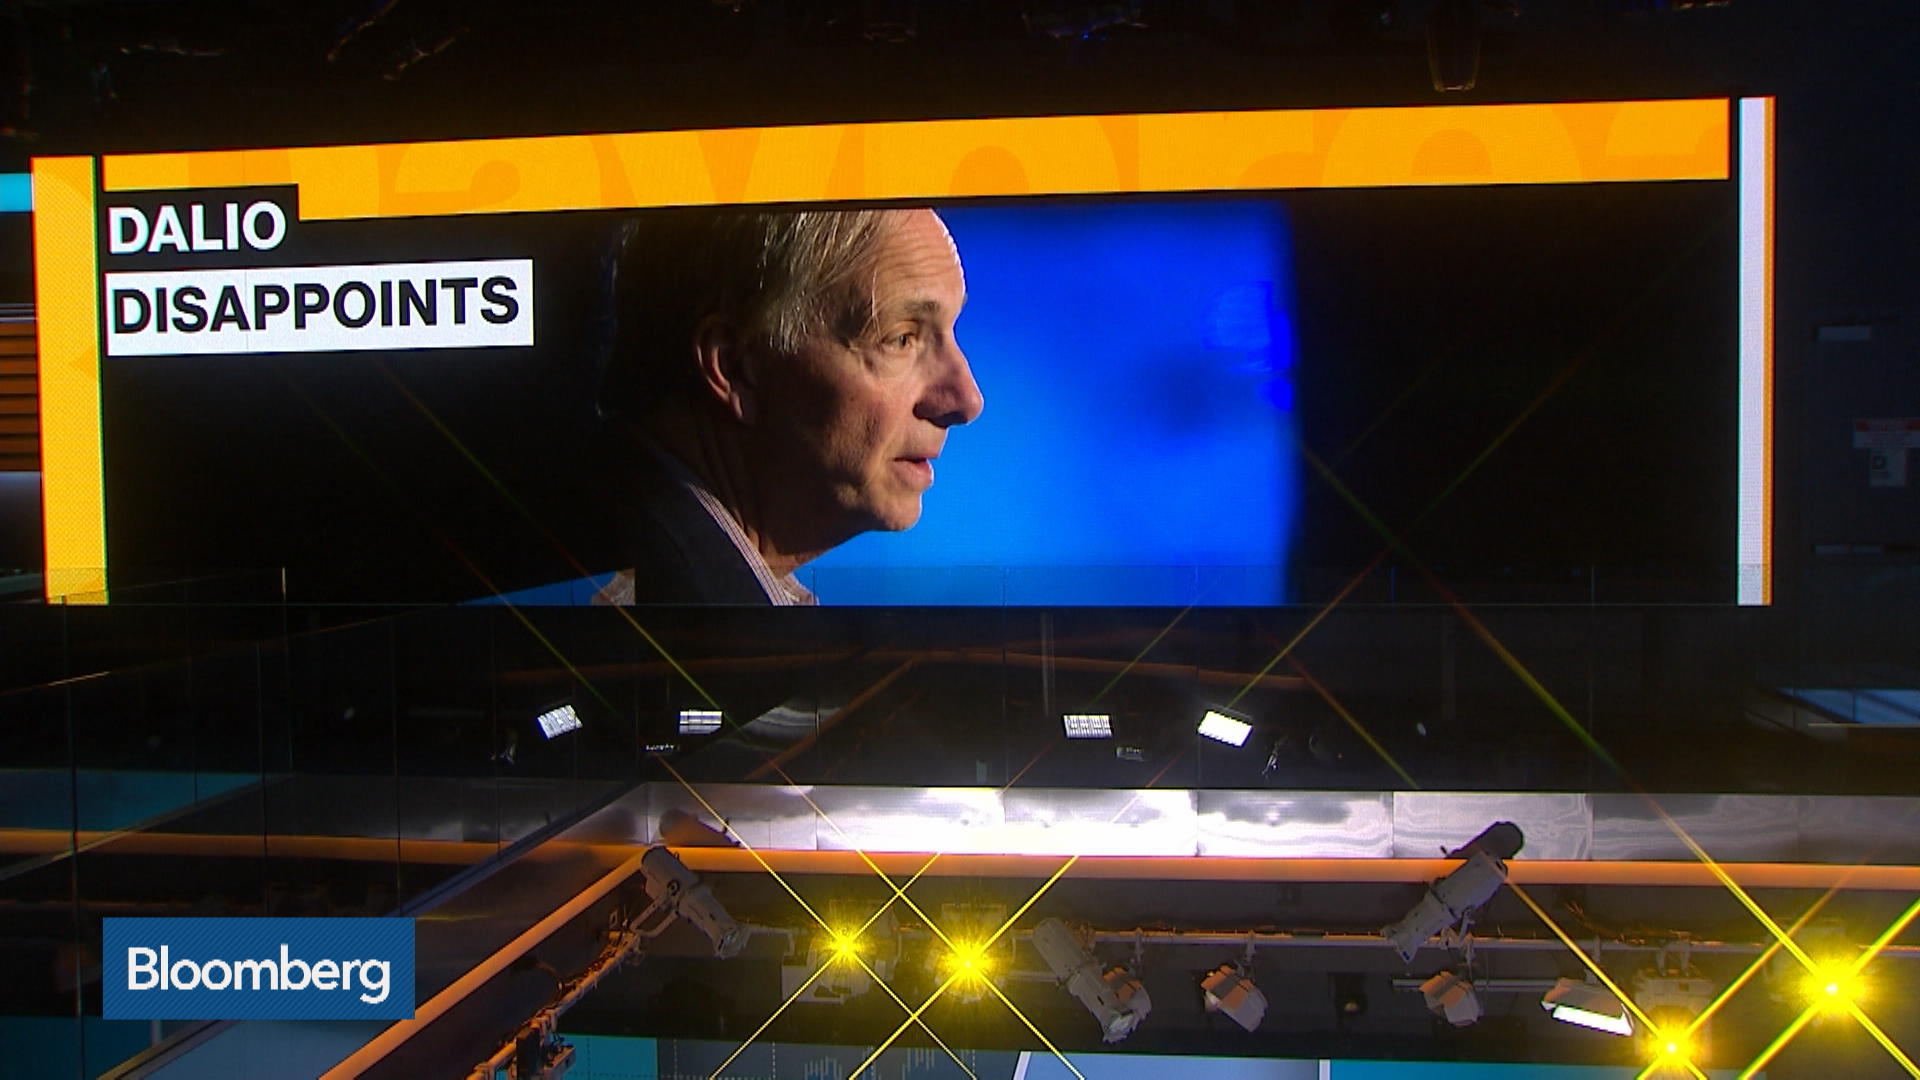 Ray Dalio's Bridgewater Fund Fails to Bounce Back From Low Bond Yields